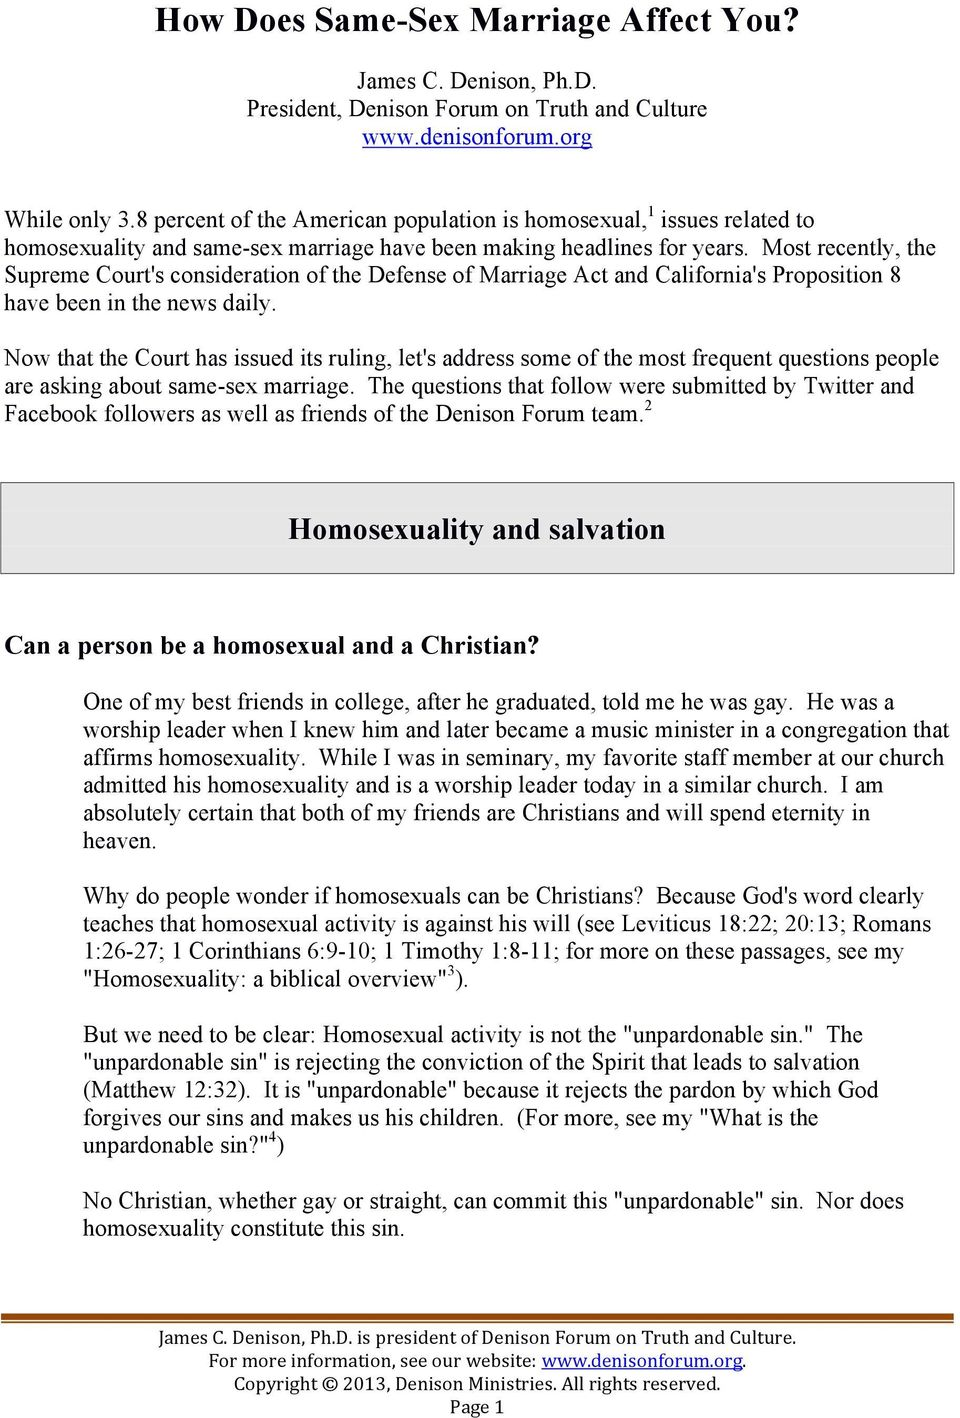 Most recently, the Supreme Court's consideration of the Defense of Marriage Act and California's Proposition 8 have been in the news daily.